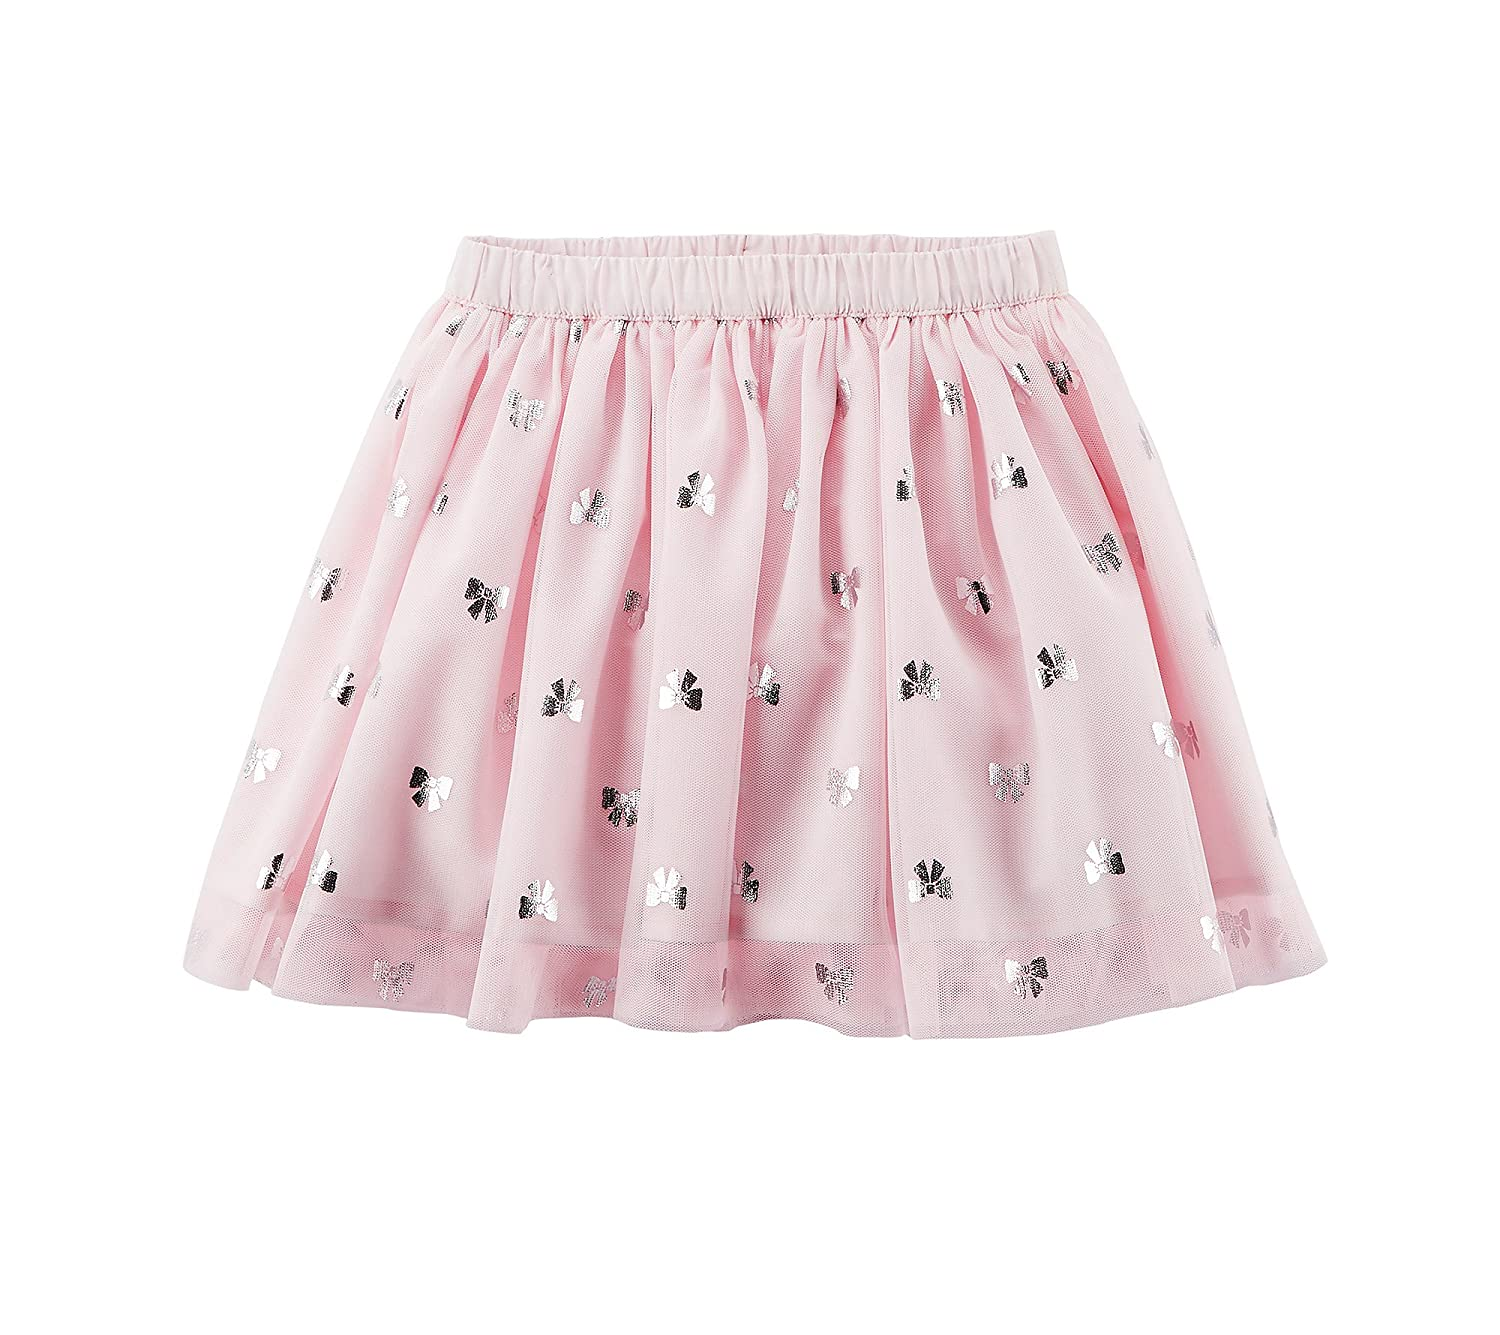 Skirt 4t Clothing, Shoes & Accessories Girls' Clothing (newborn-5t)